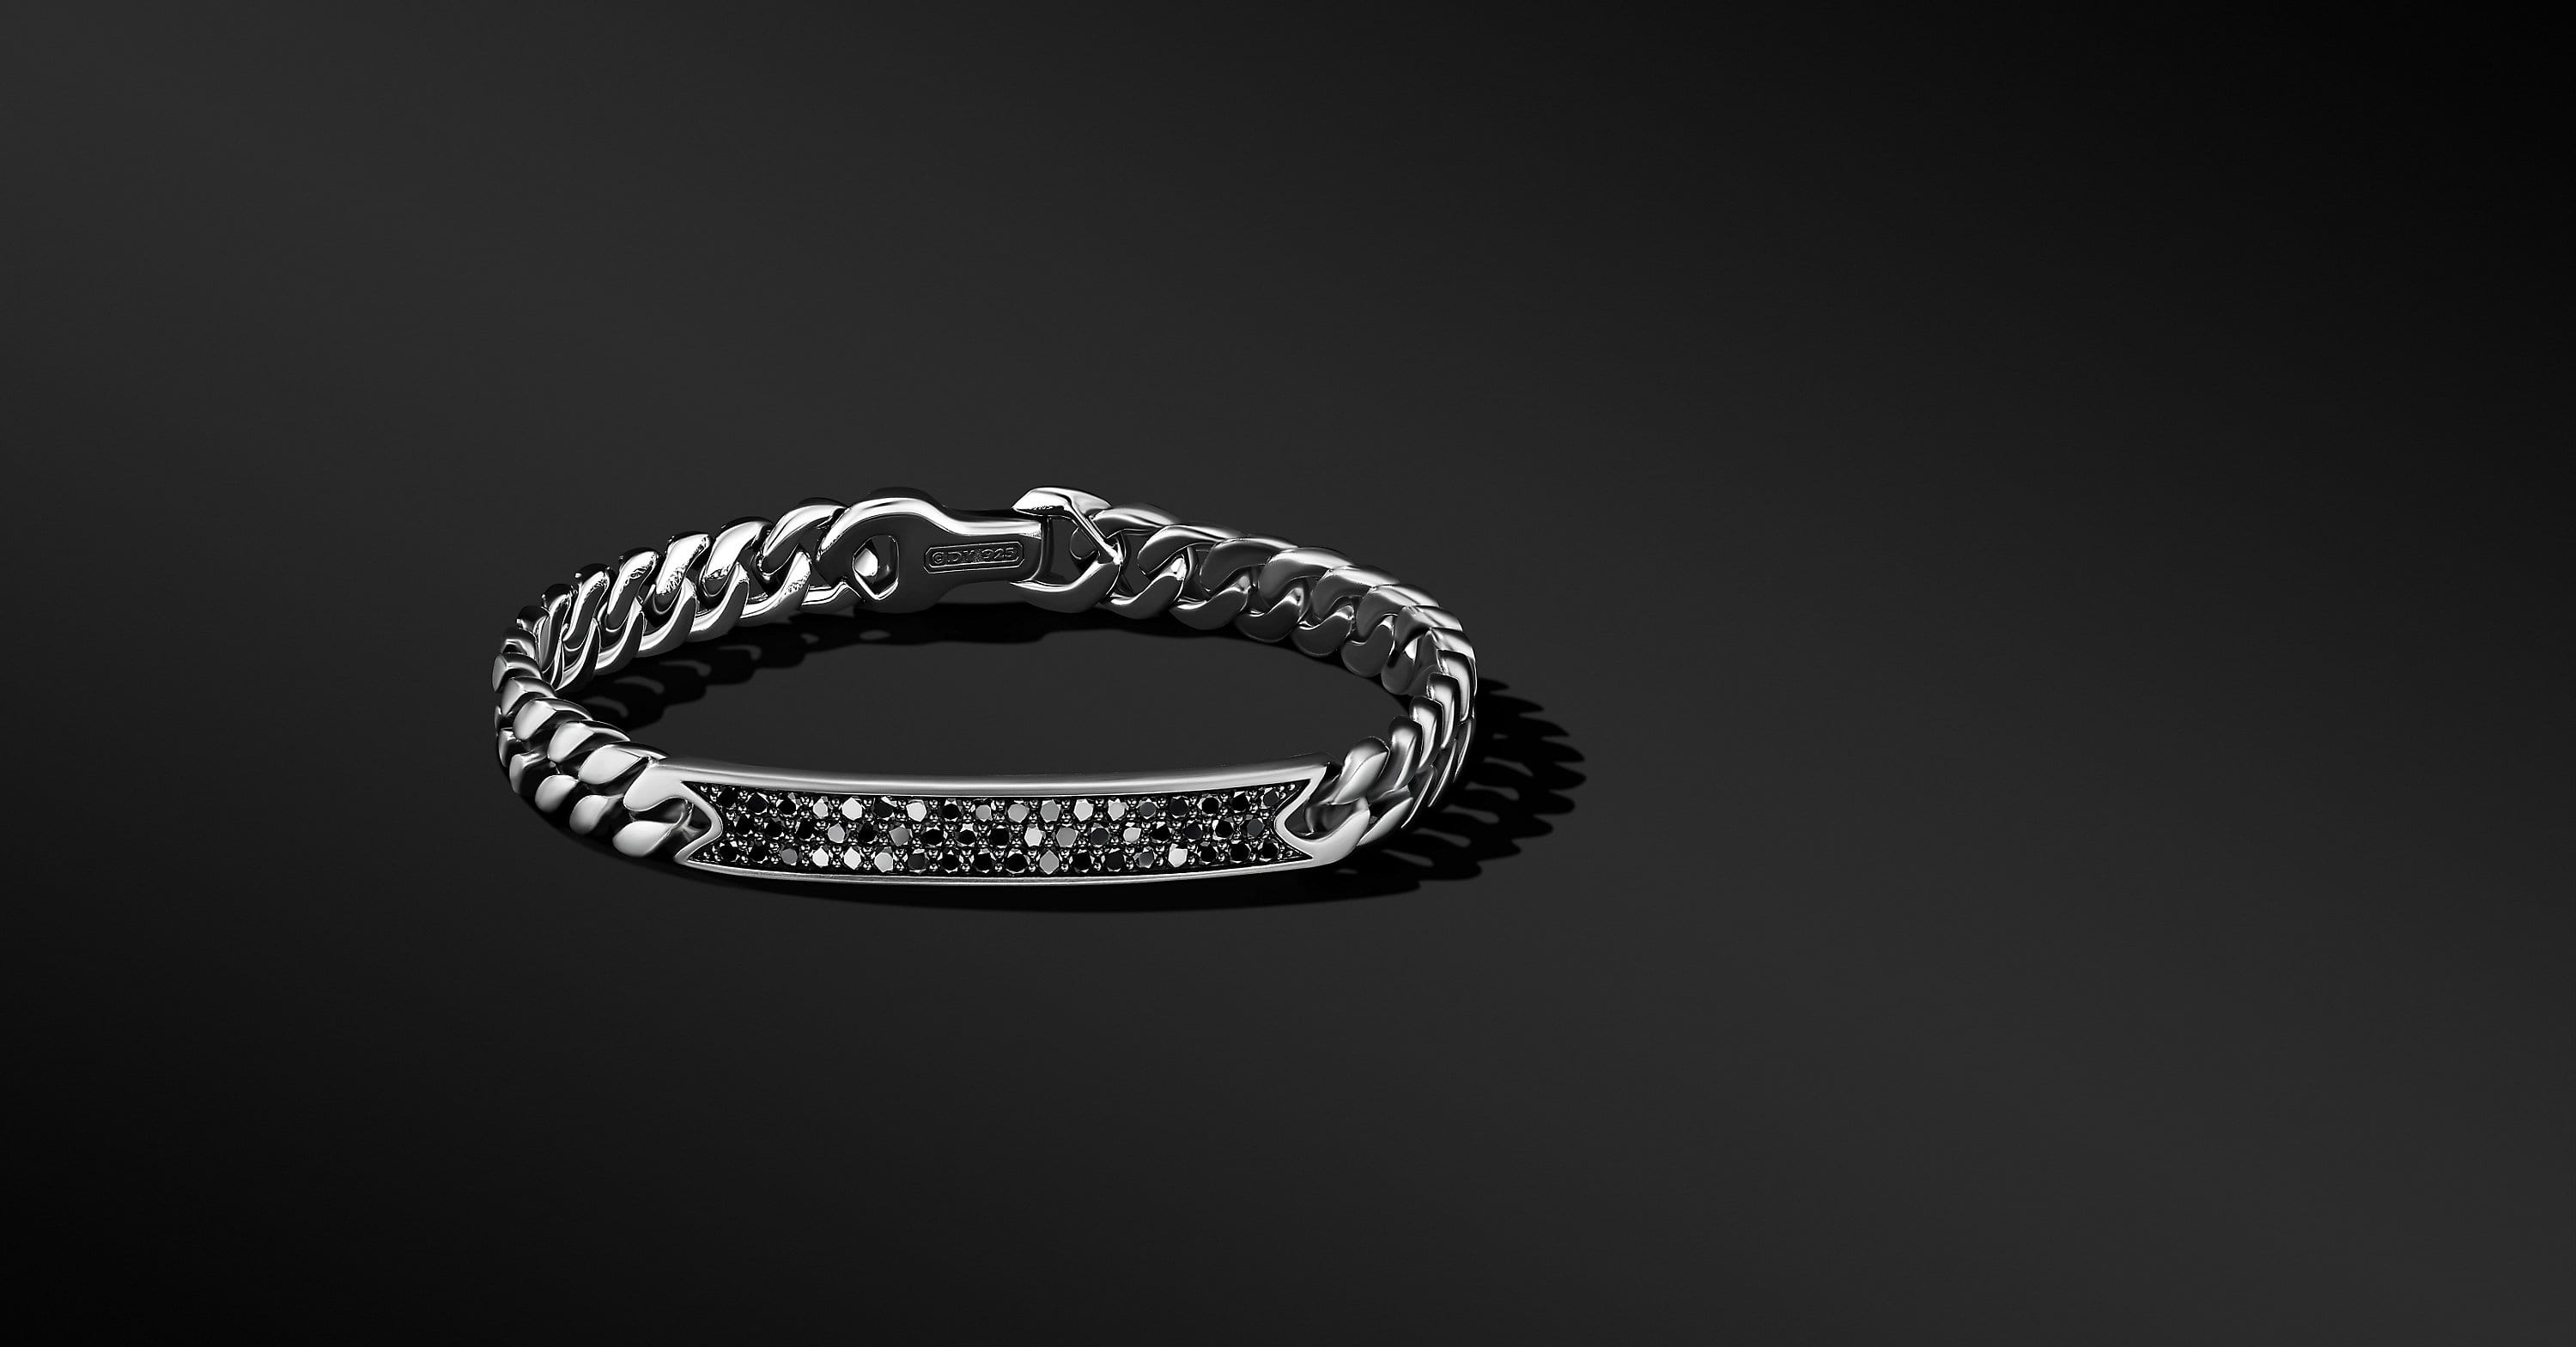 Micro Curb Chain ID Bracelet, 8mm